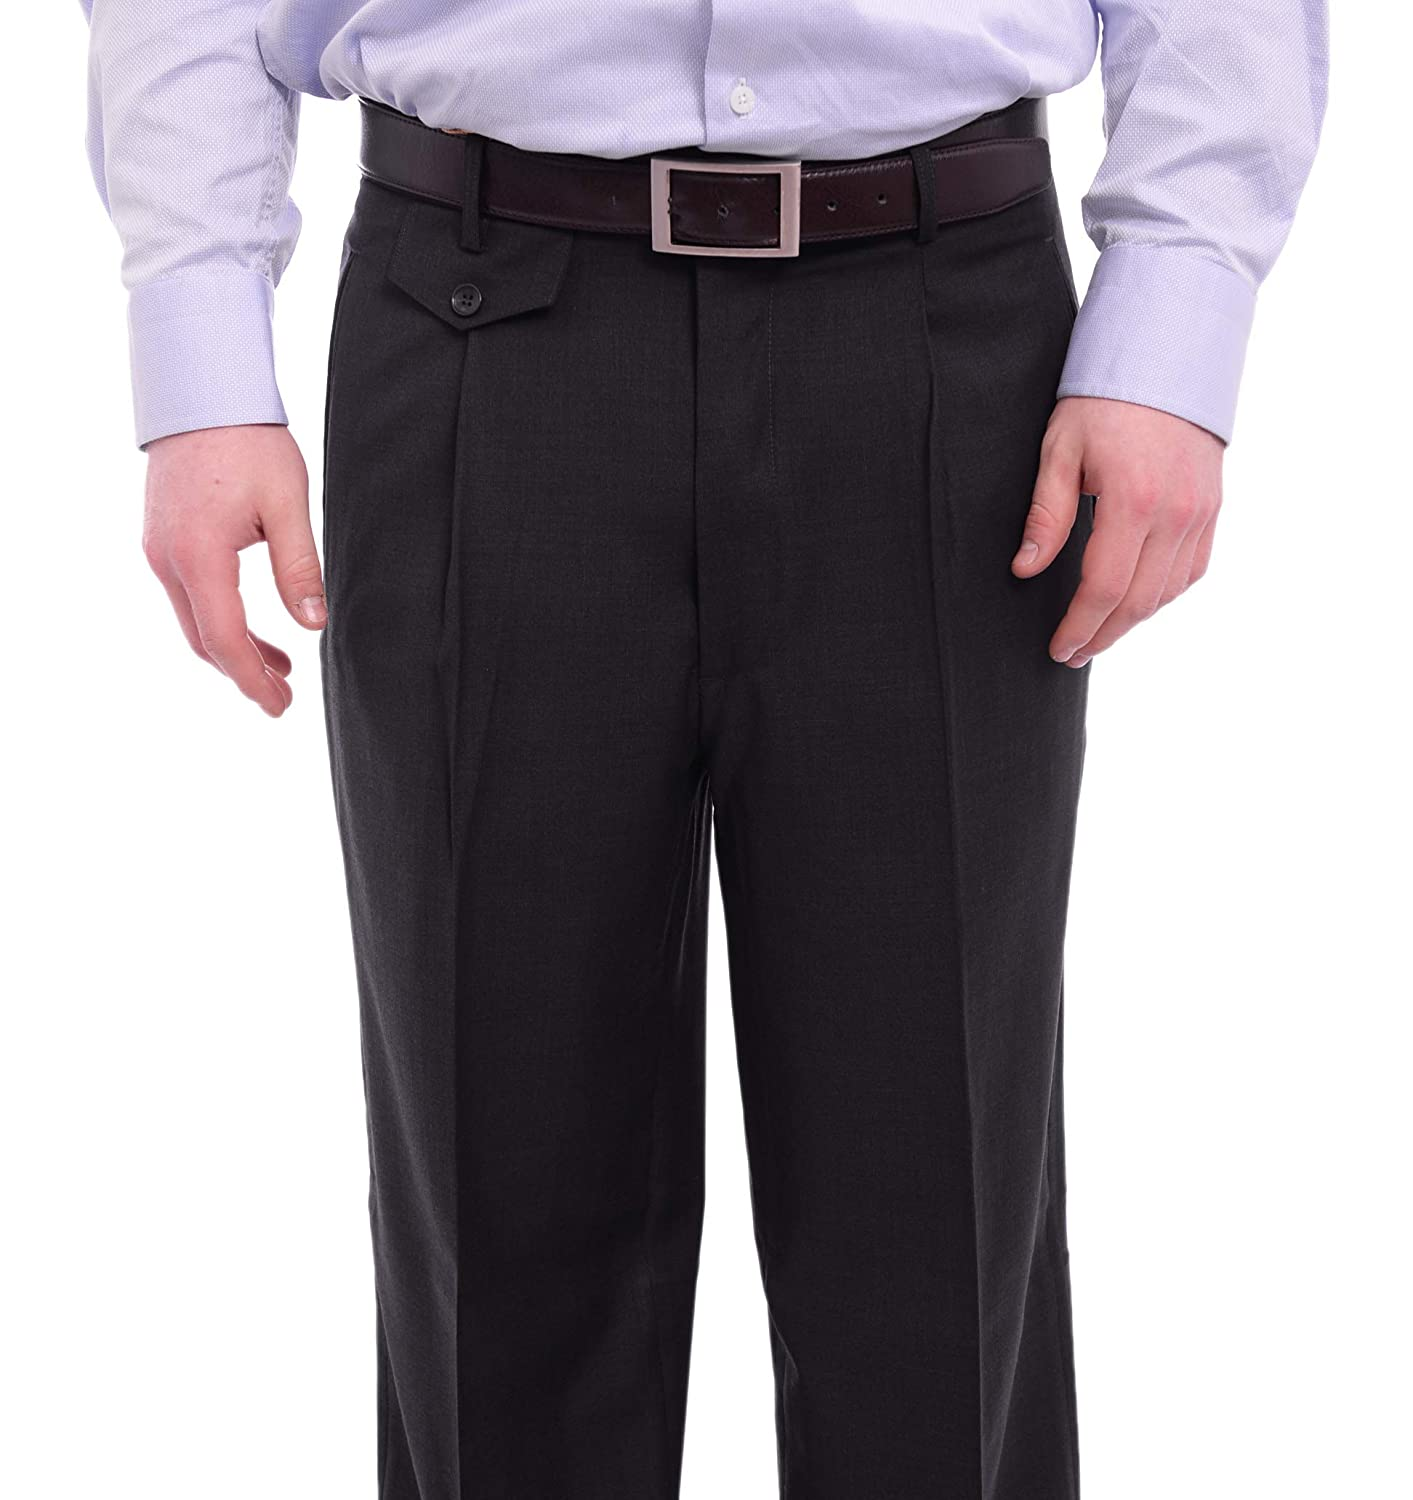 Apollo King Classic Fit Solid Charcoal Single Pleated Wide Leg Wool Dress Pants